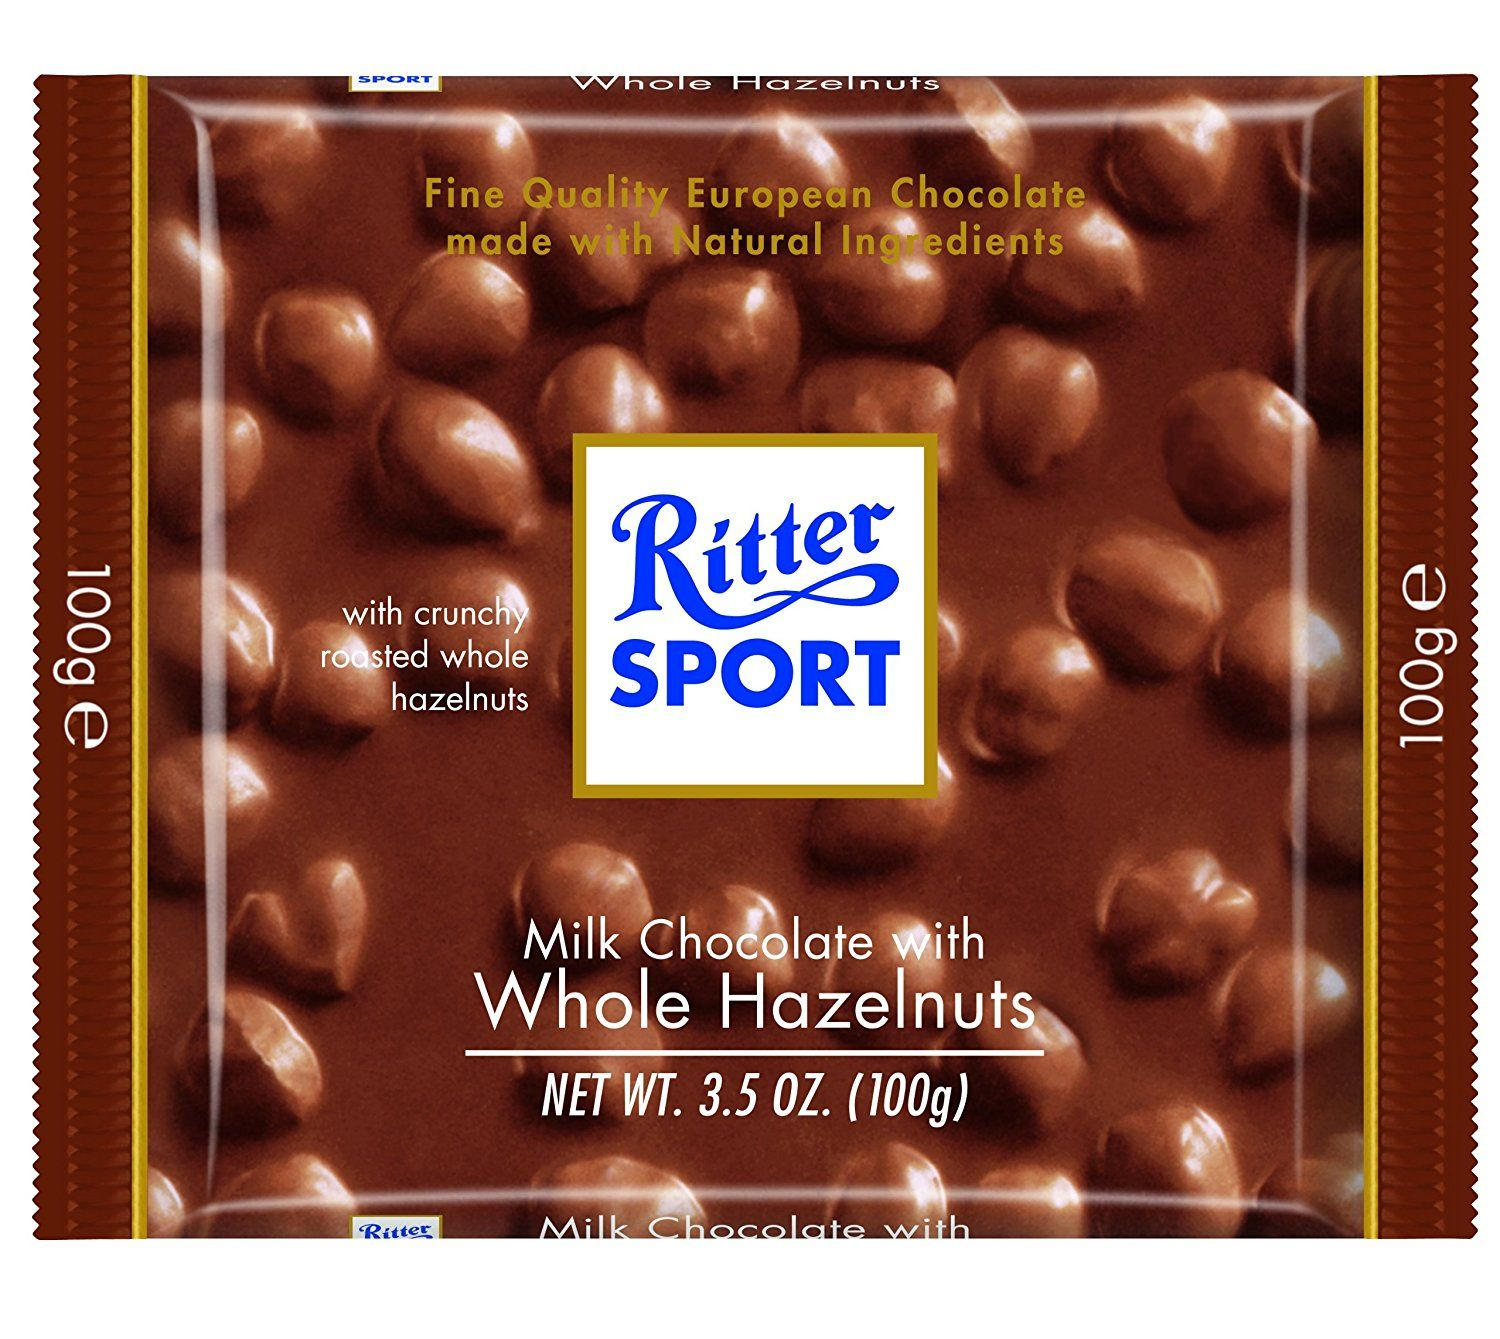 Image result for RITTER SPORT MILK CHOCOLATE WHOLE